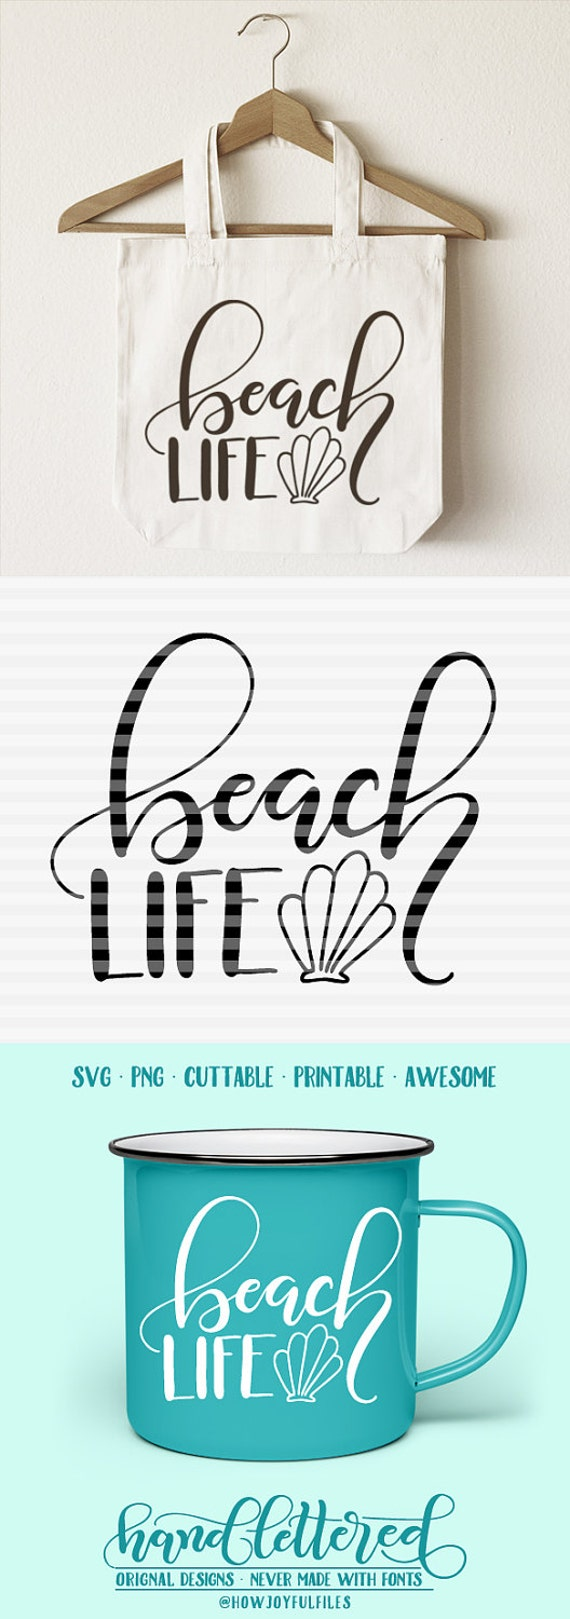 Beach Life Svg Dxf Pdf Files Hand Drawn Lettered Cut Etsy